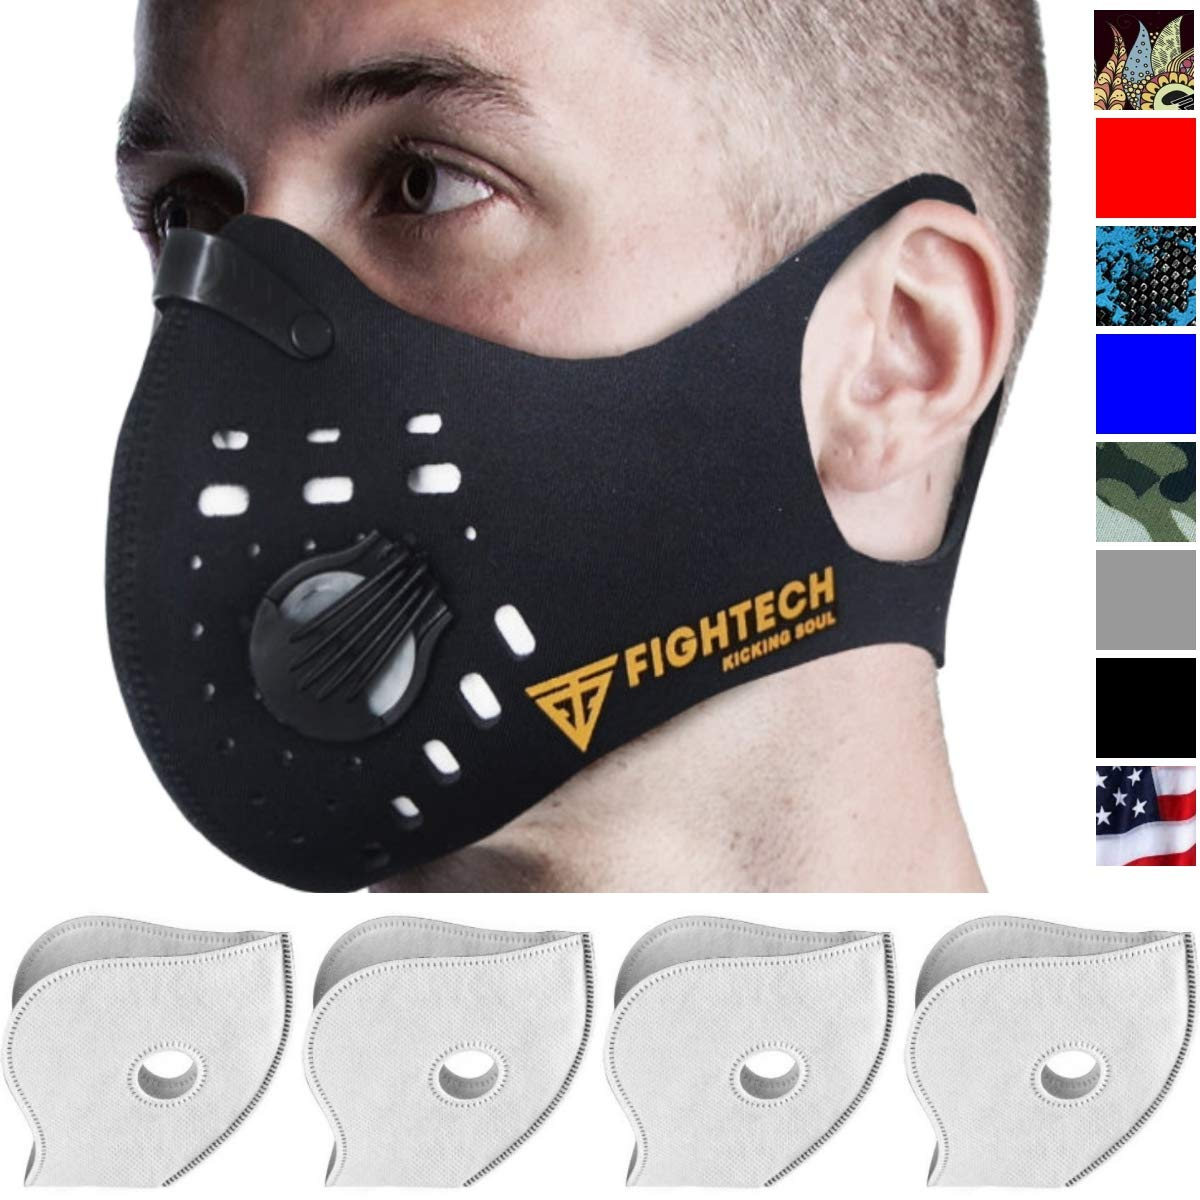 Dust Mask by Fightech | Mouth Mask Respirator with 4 Carbon N99 Filters for Pollution Pollen Allergy Woodworking Mowing Running | Washable and Reusable Neoprene Half Face Mask (Large/X-Large, Black) by FIGHTECH